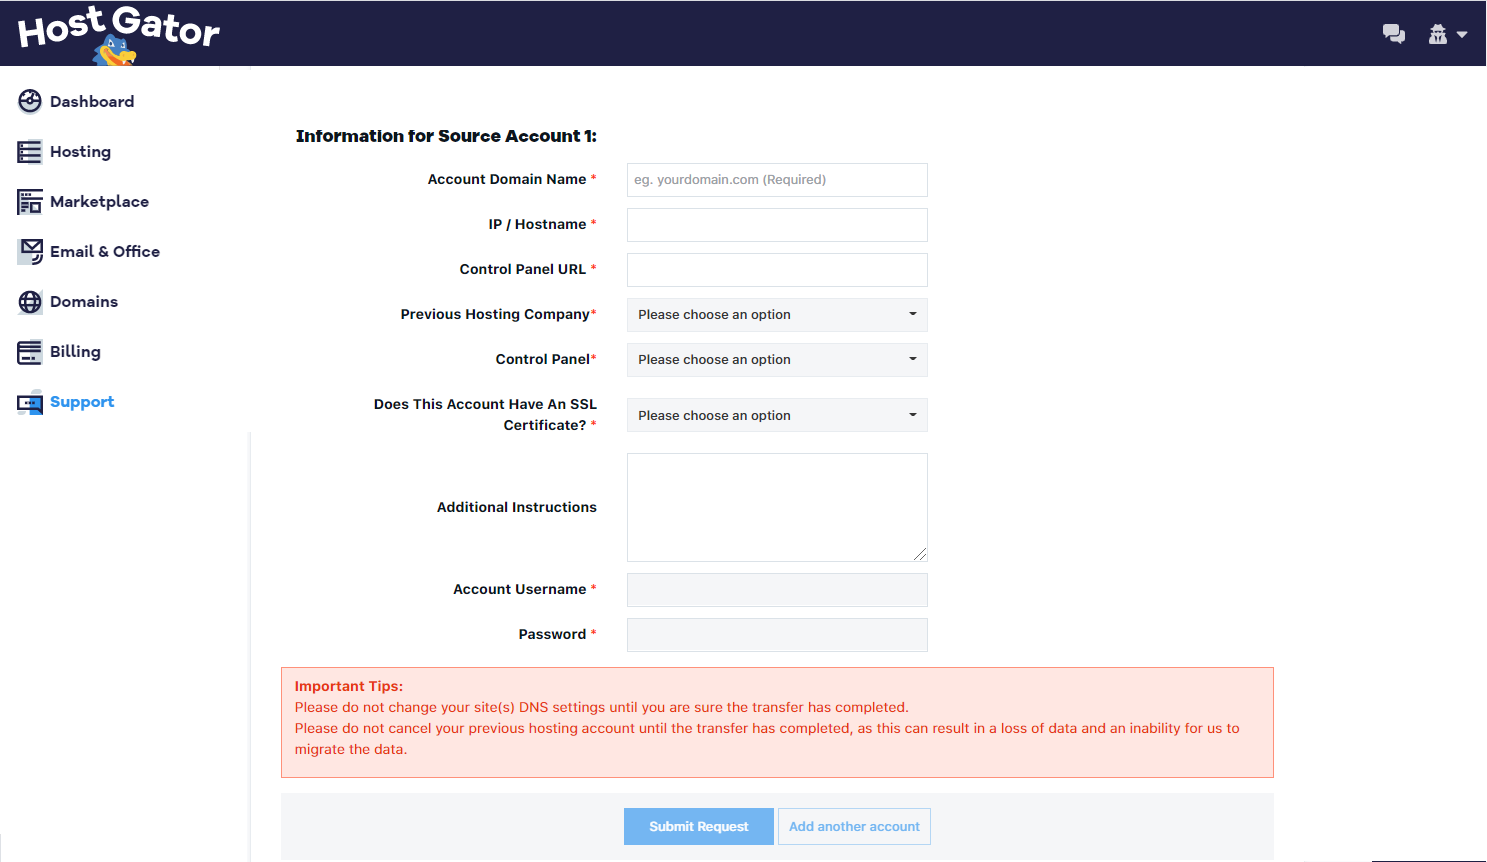 Customer Portal - Request Migration Form - Source Account